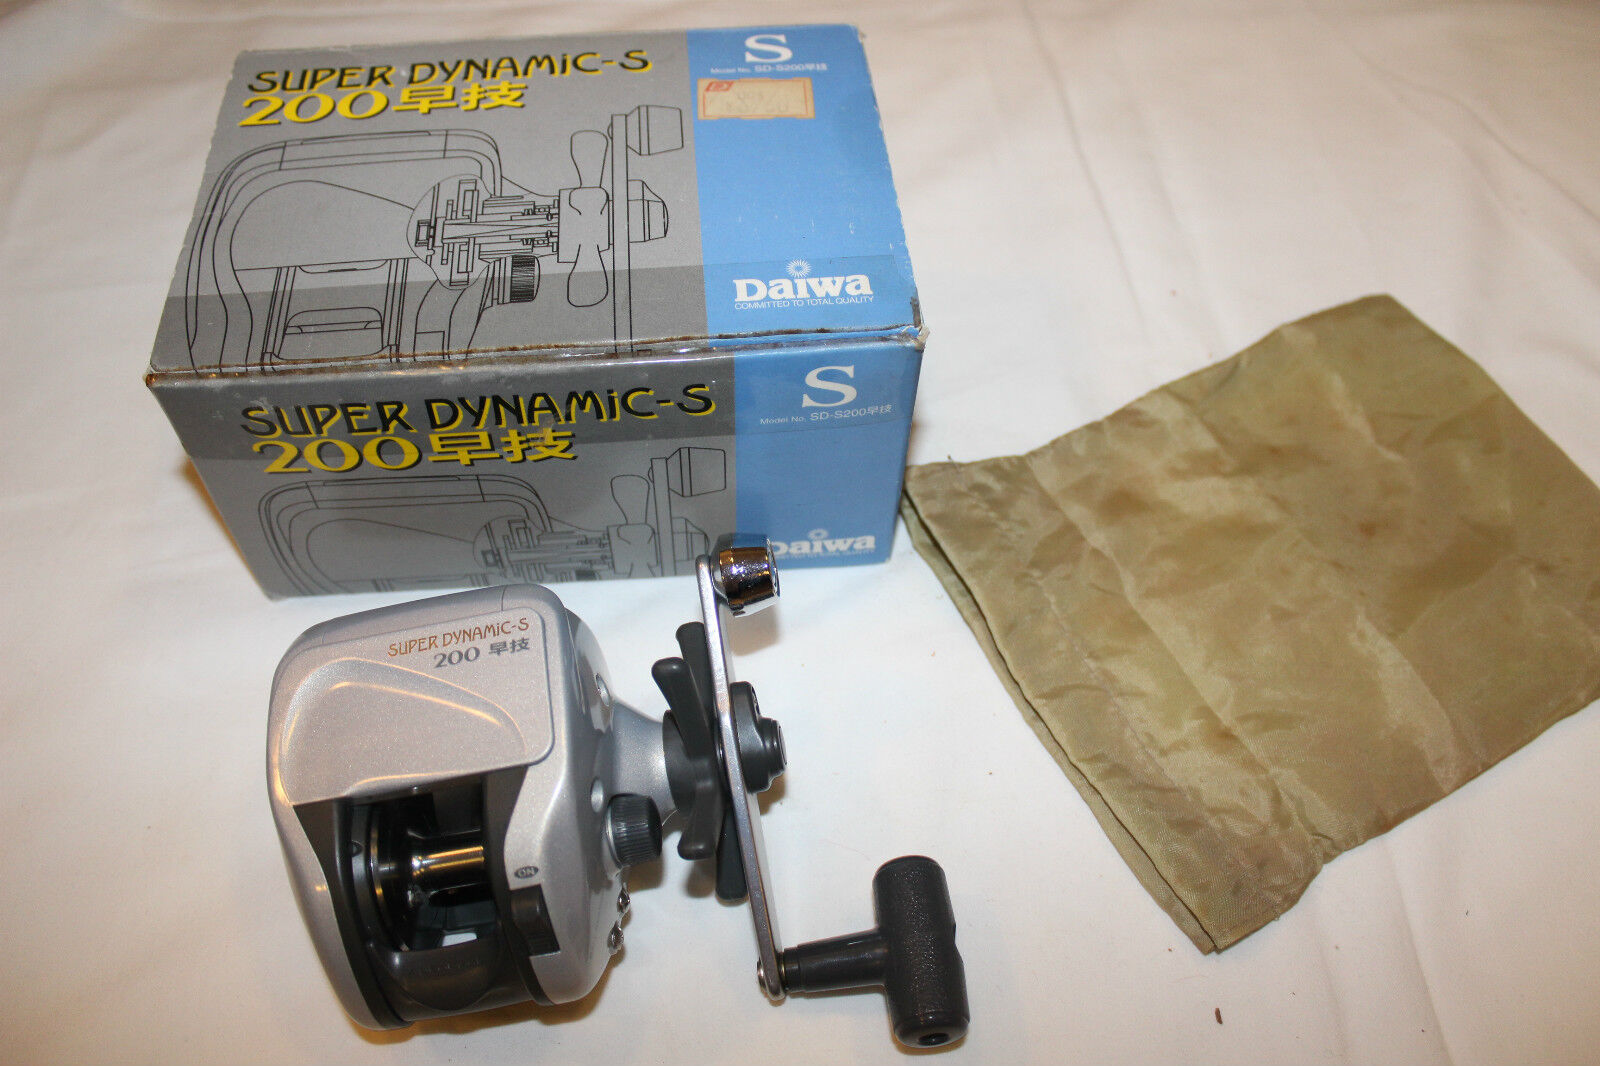 DAIWA  SUPER DYNAMIC S-  200 BOOTSROLLE-MADE IN  JAPAN -Nr 200  floor price